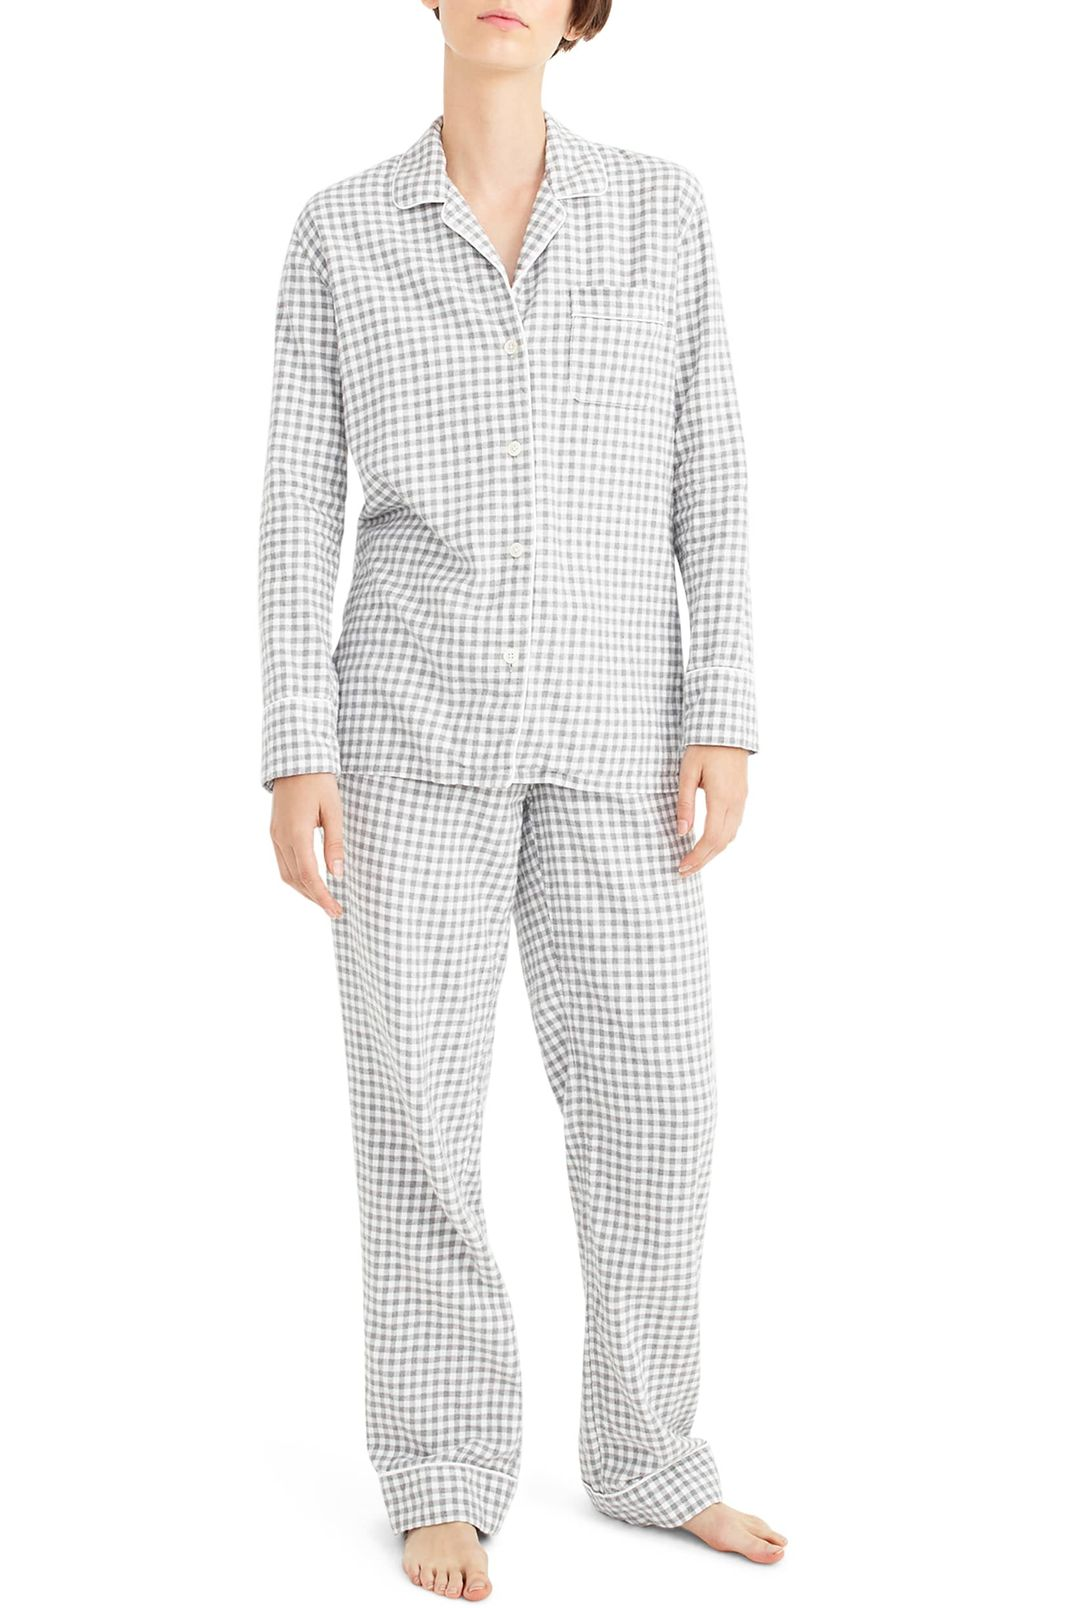 J.Crew Gingham Flannel Pajamas